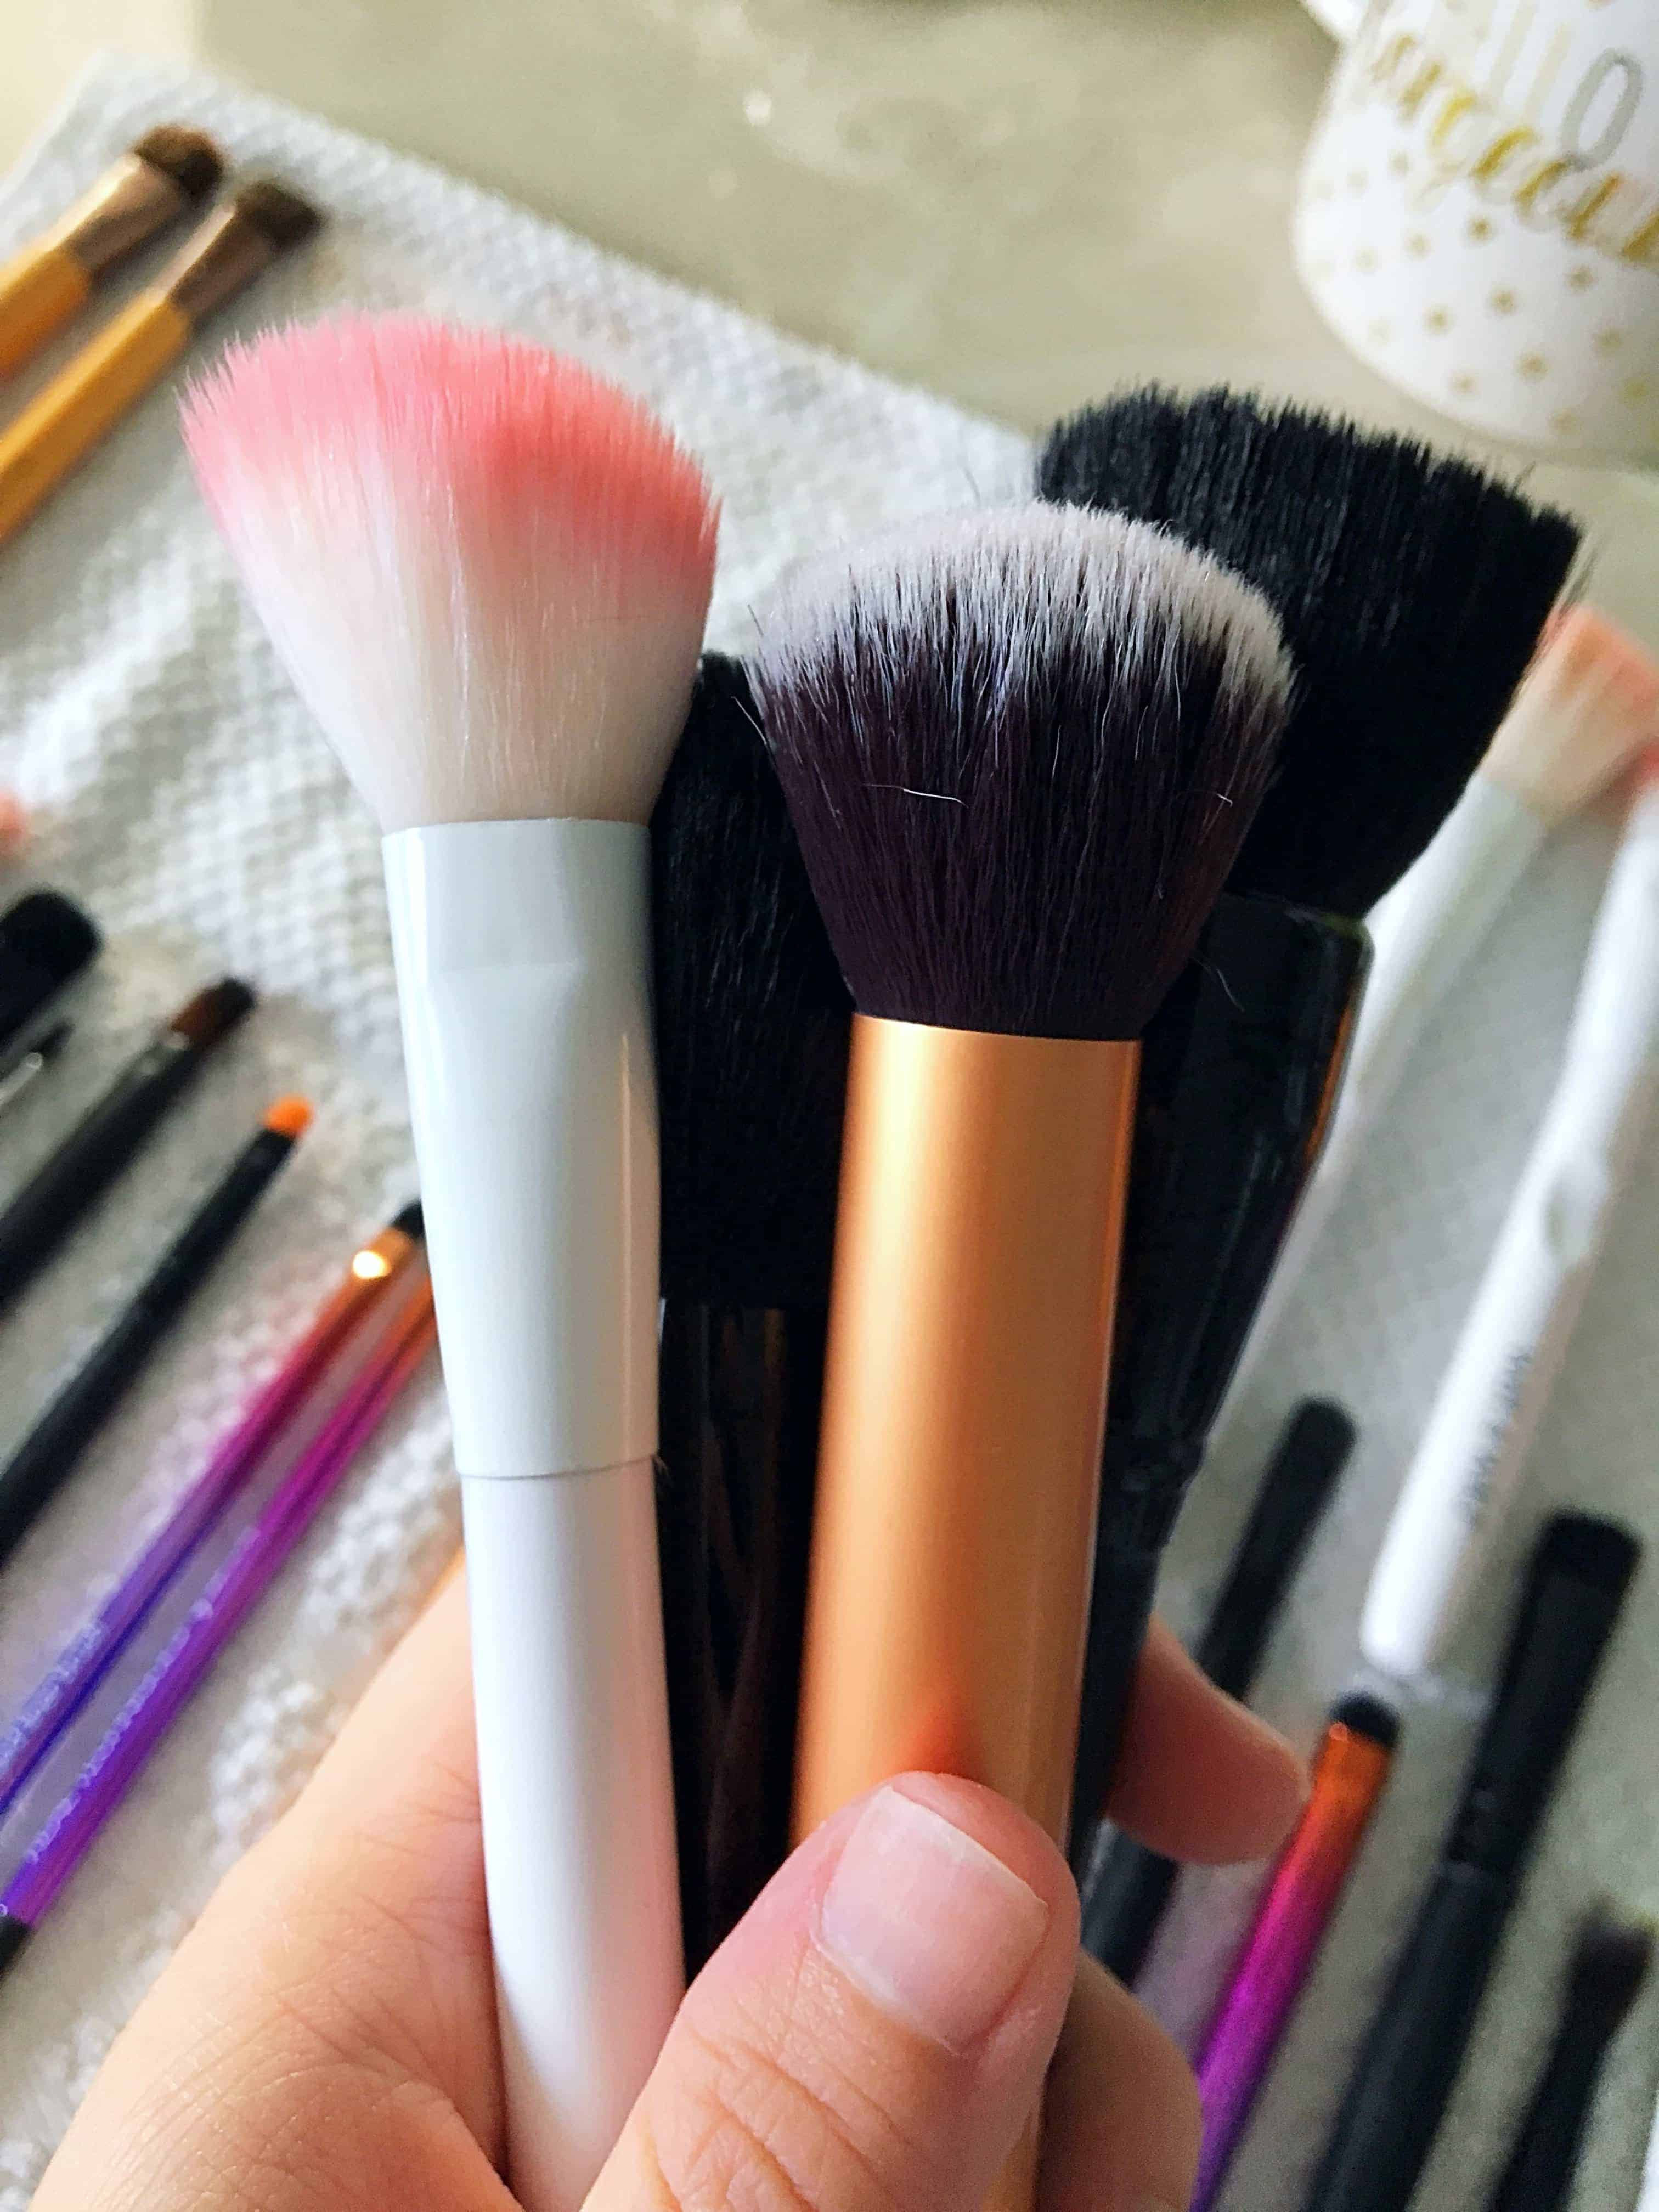 Want to know how to best clean your makeup brushes at home? Today I'